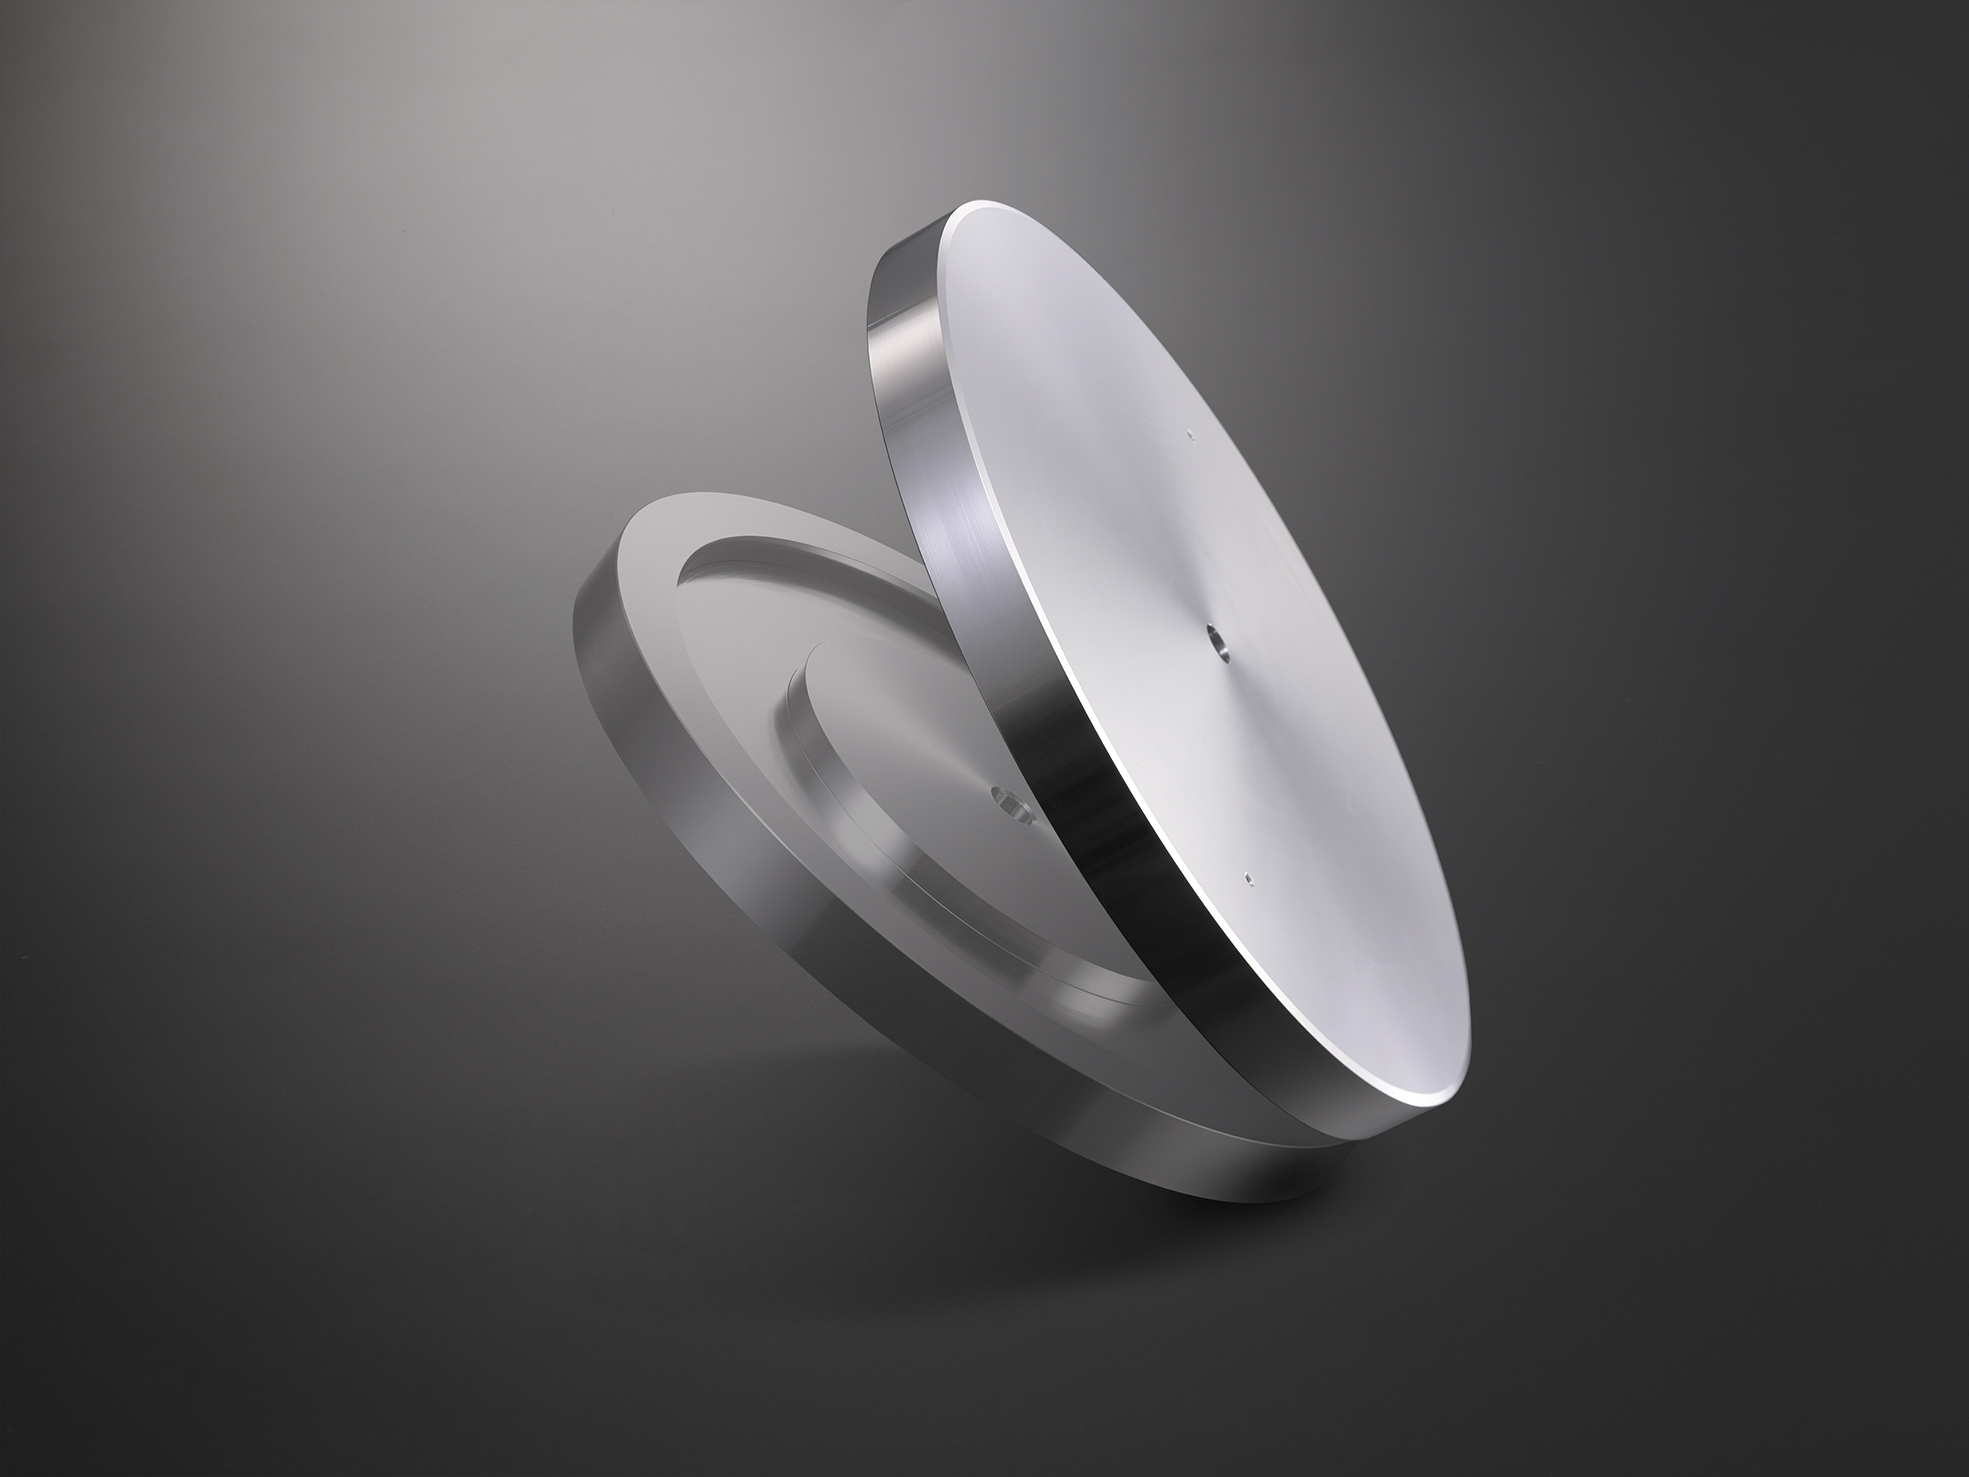 4.0 kg machined aluminum platter and stainless steel spindle